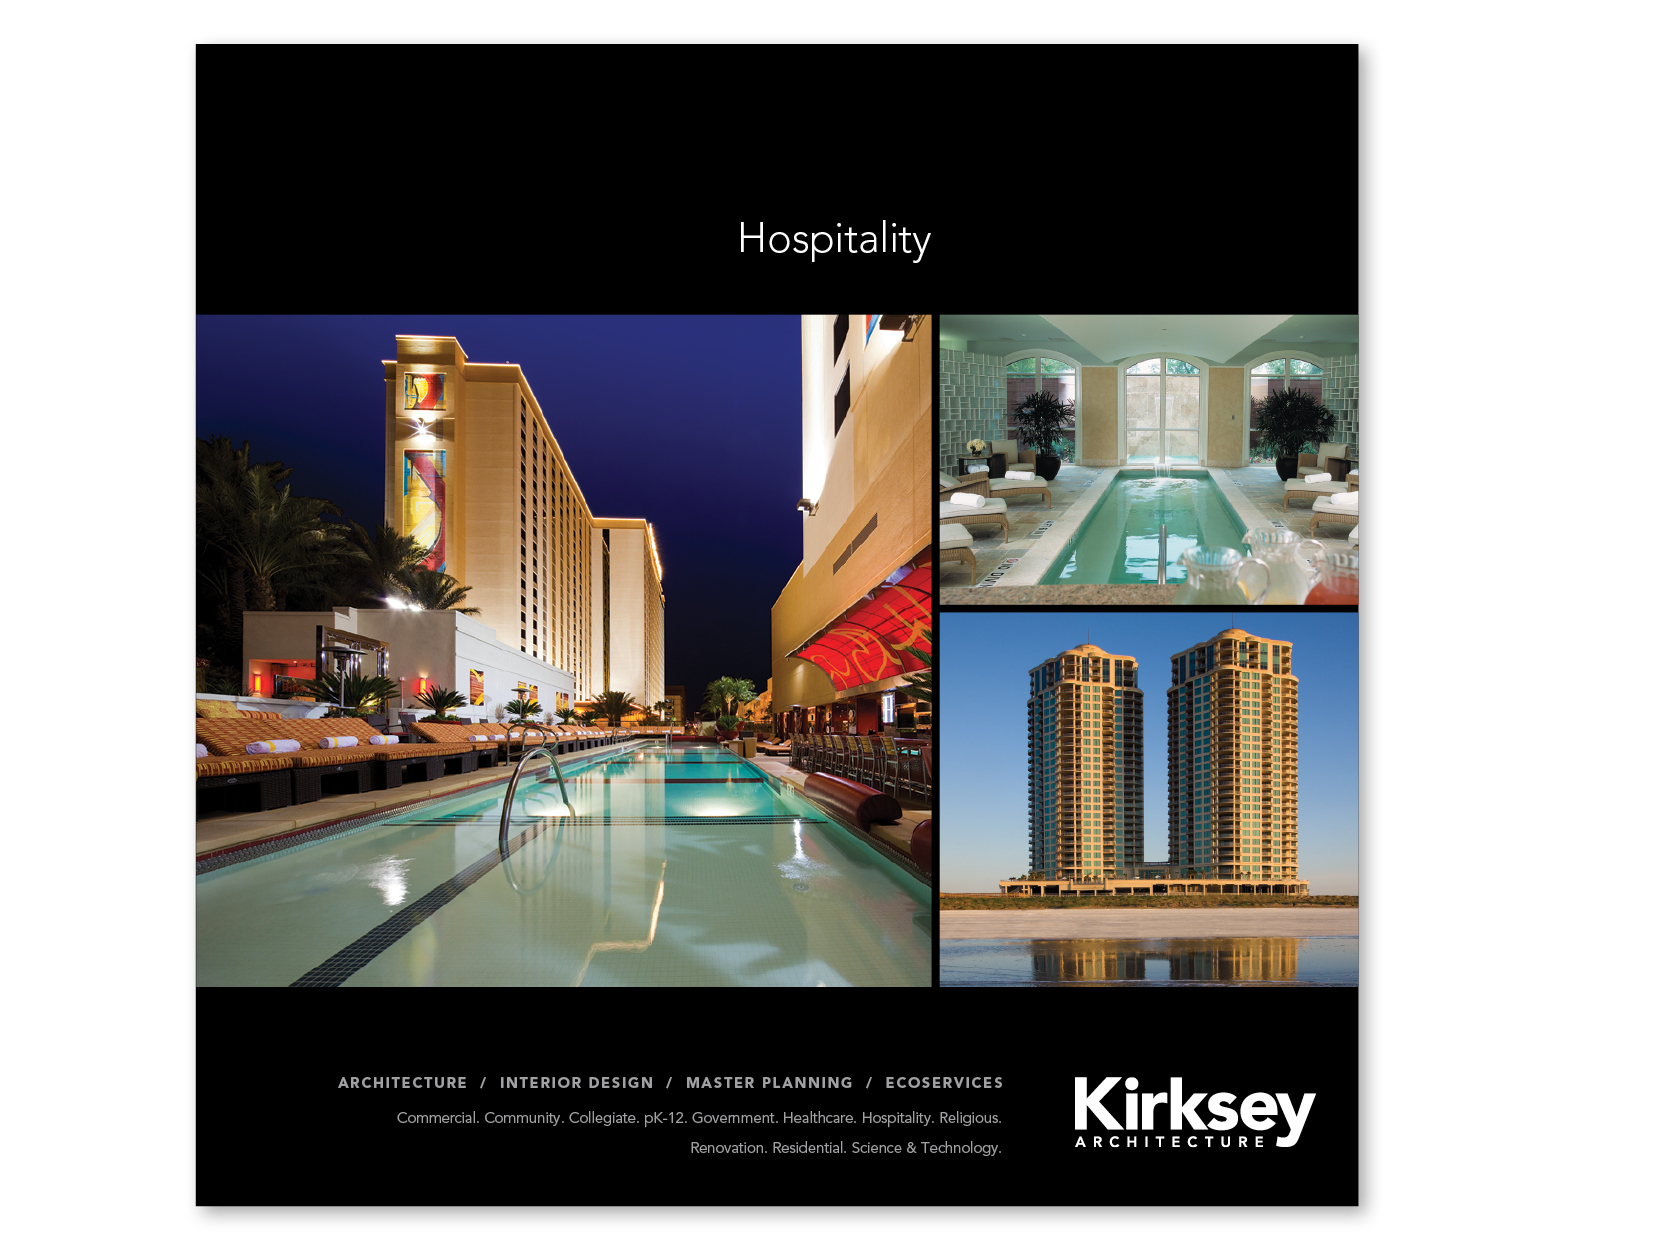 Preview of the resource library item for We're Kirksey Hospitality